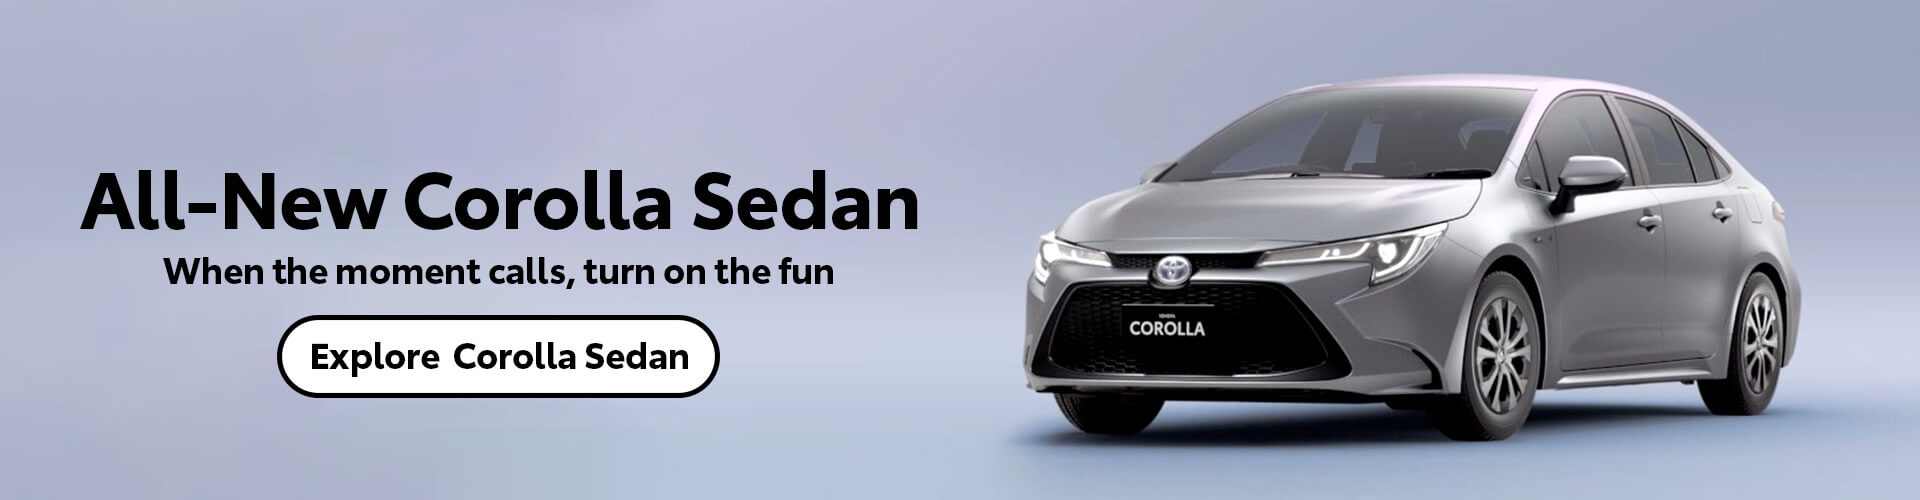 All-New Corolla Sedan